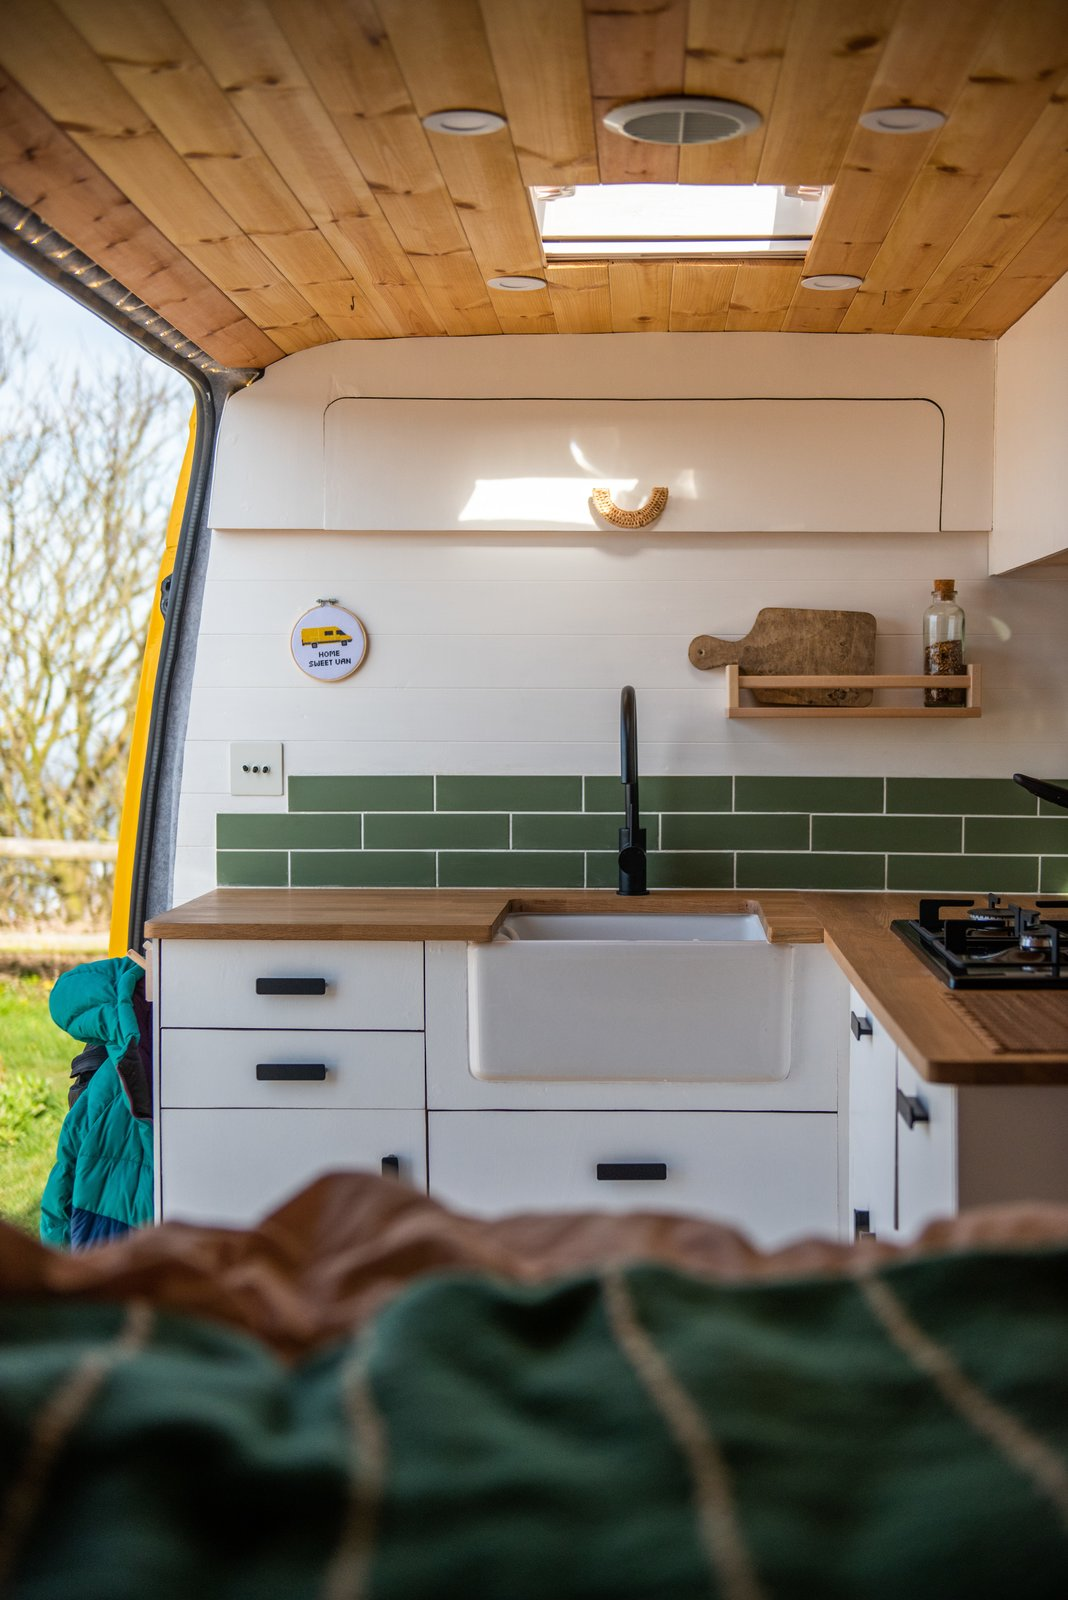 A Belfast sink adds a farmhouse feel to the polished kitchen.   Photo 16 of 22 in Budget Breakdown: A Climbing Couple Turn a Delivery Van Into an Adventure Mobile for $8.5K